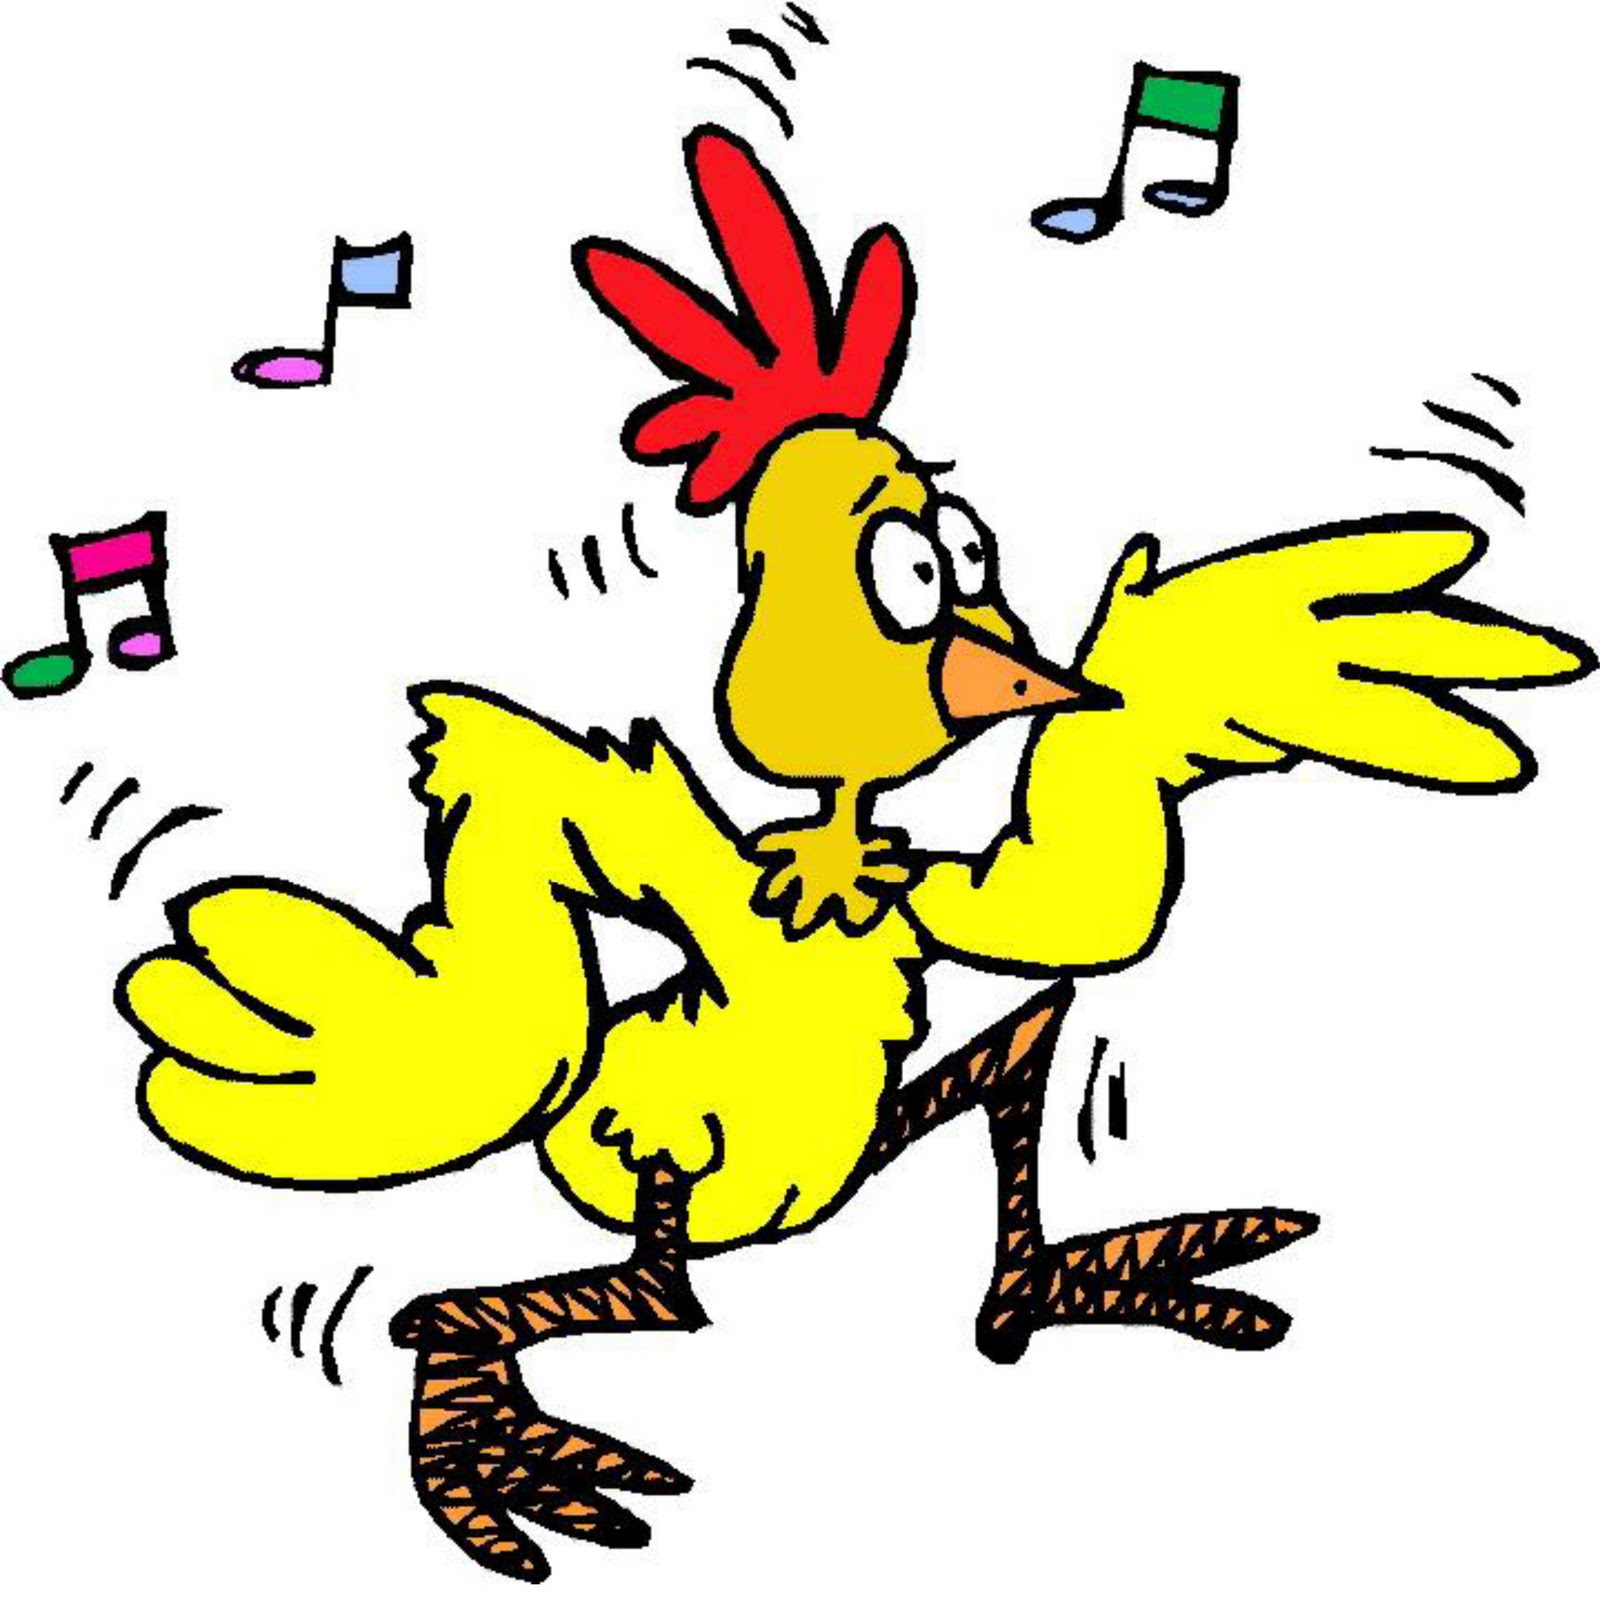 Funky Chicken Dancing Animated Gif   Clipart Best   Clipart Best